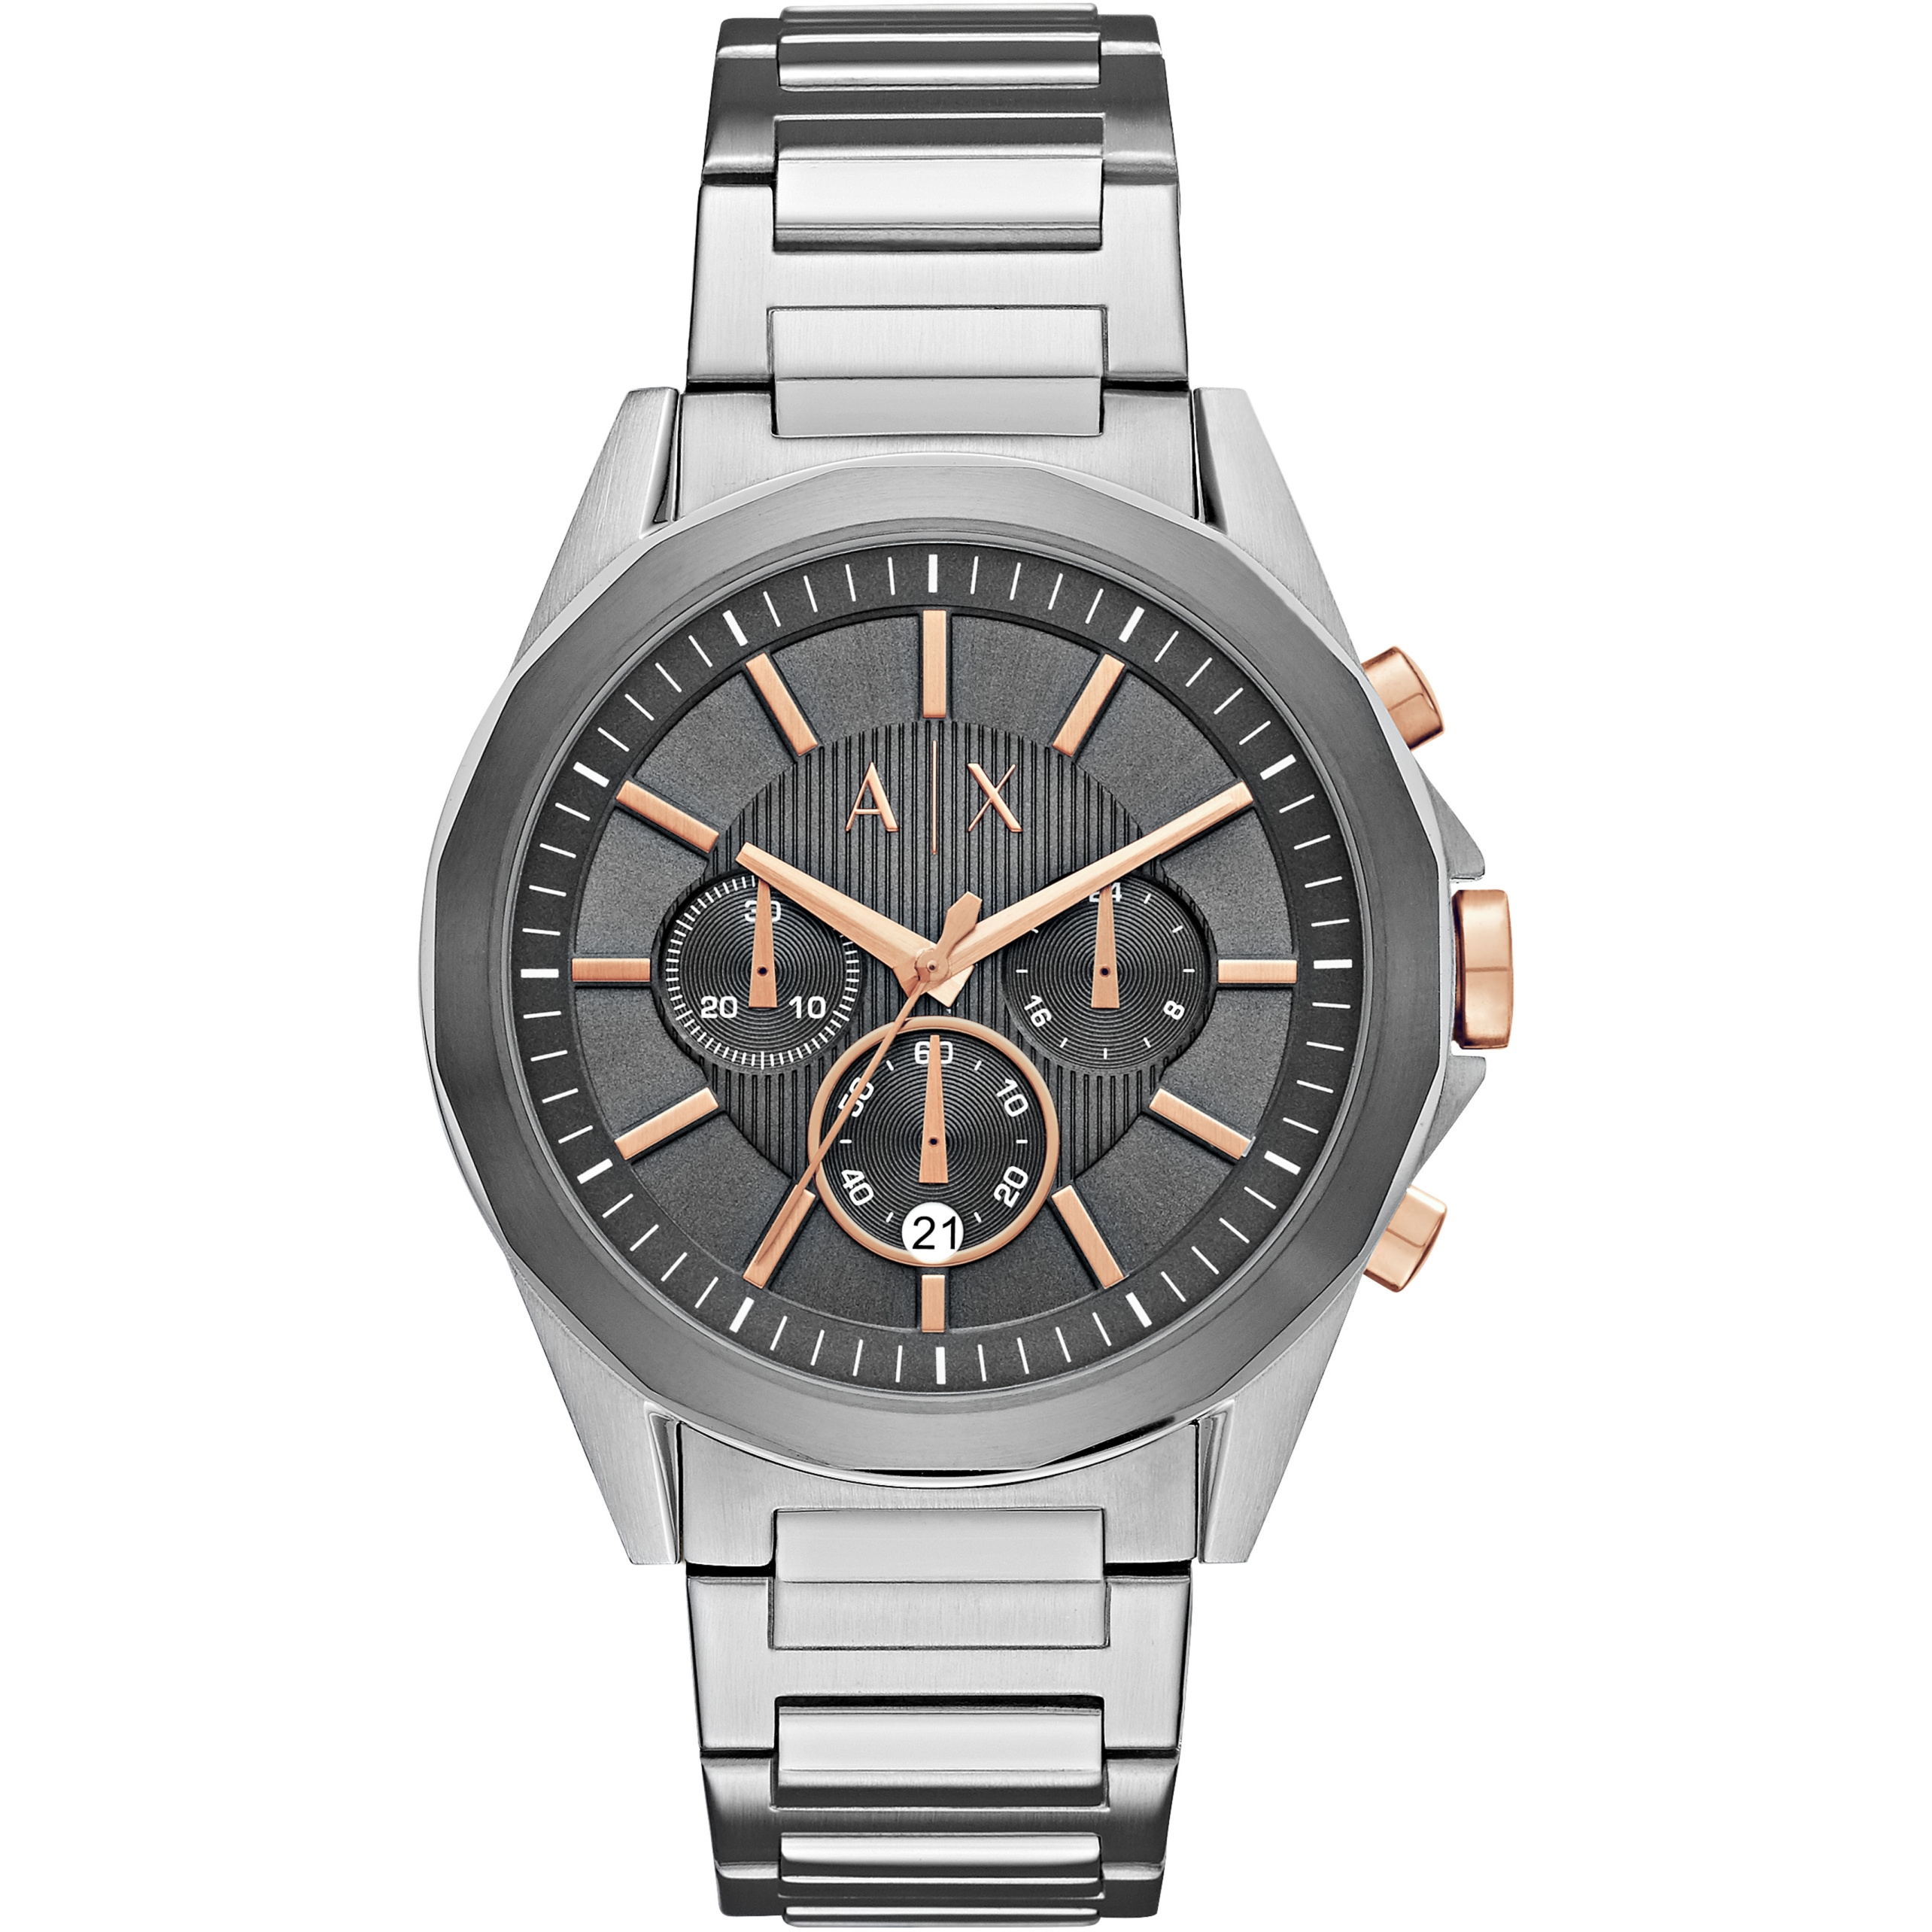 9e4bfc33a9a Gents Armani Exchange Chronograph Watch (AX2606)